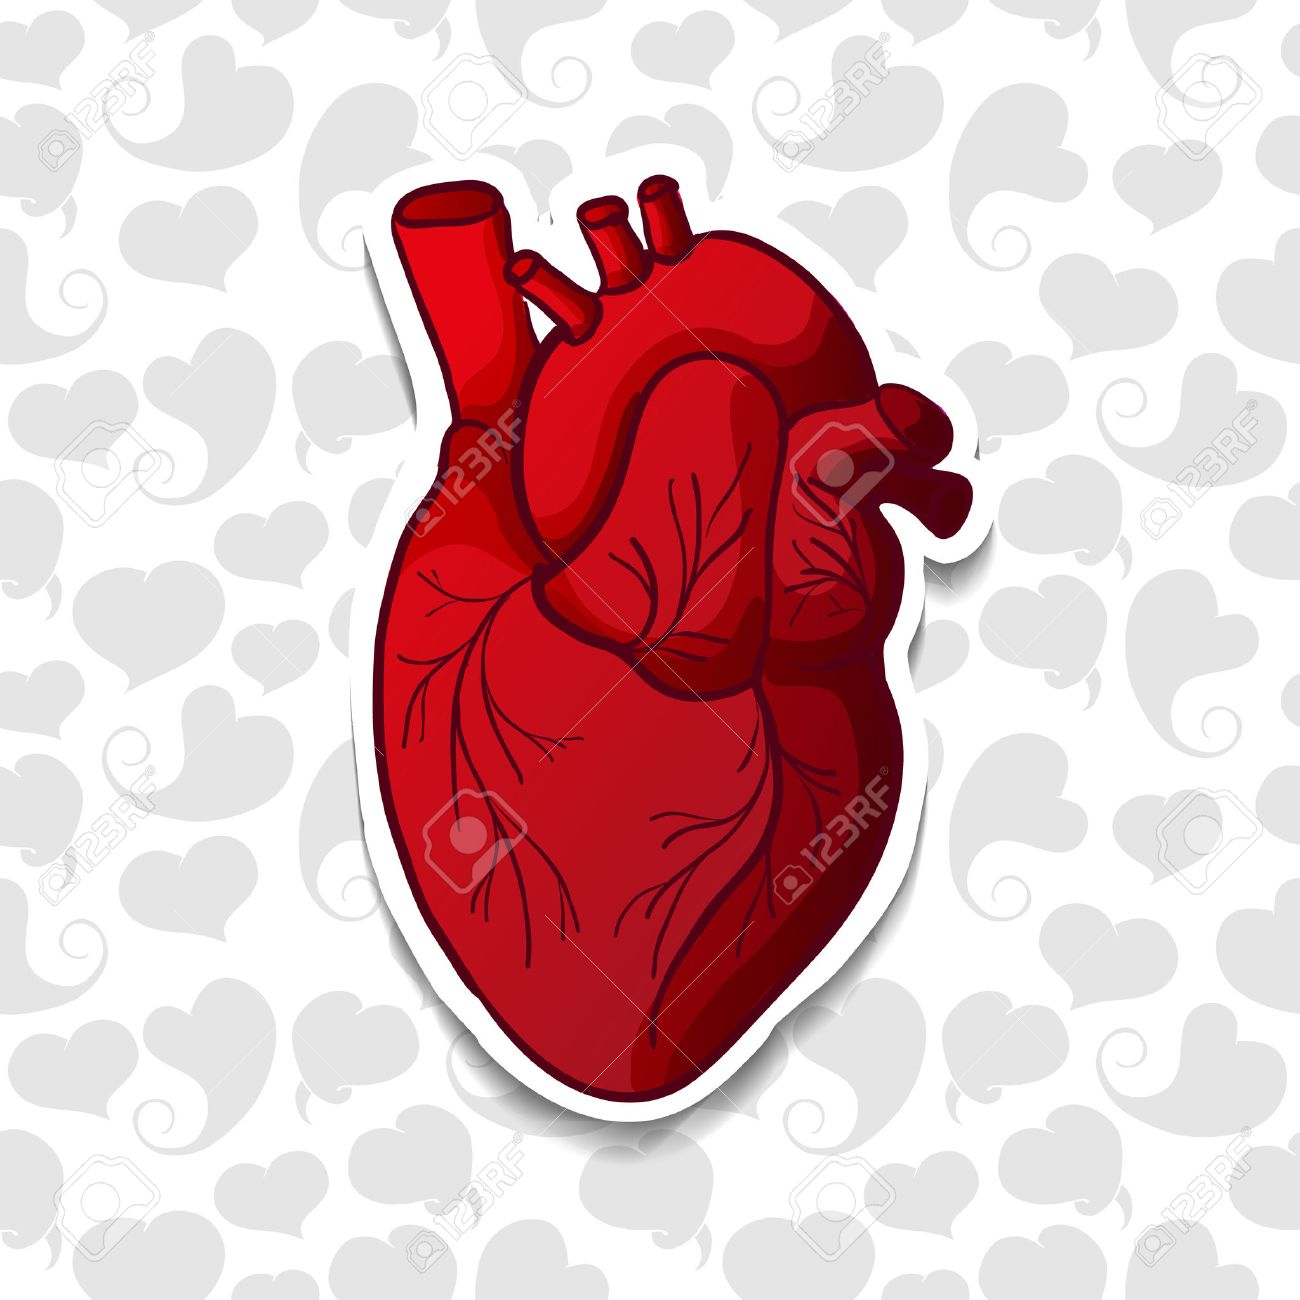 Human Heart Stock Photos Royalty Free Human Heart Images